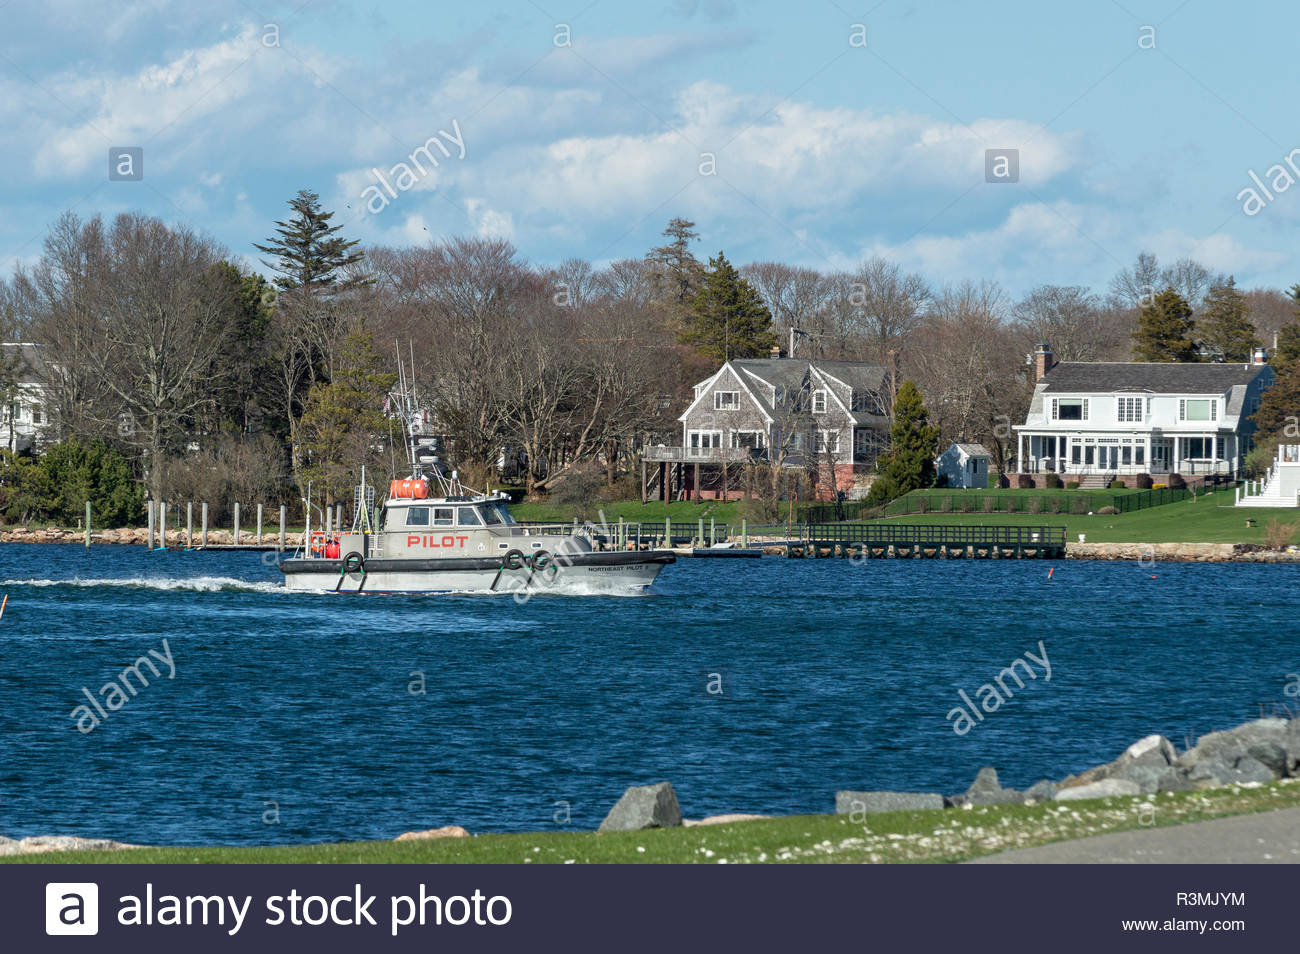 New Bedford, Massachusetts, USA - April 26, 2018: Pilot boat Northeast Pilot II approaching hurricane barrier with Fairhaven residences in background - Stock Image